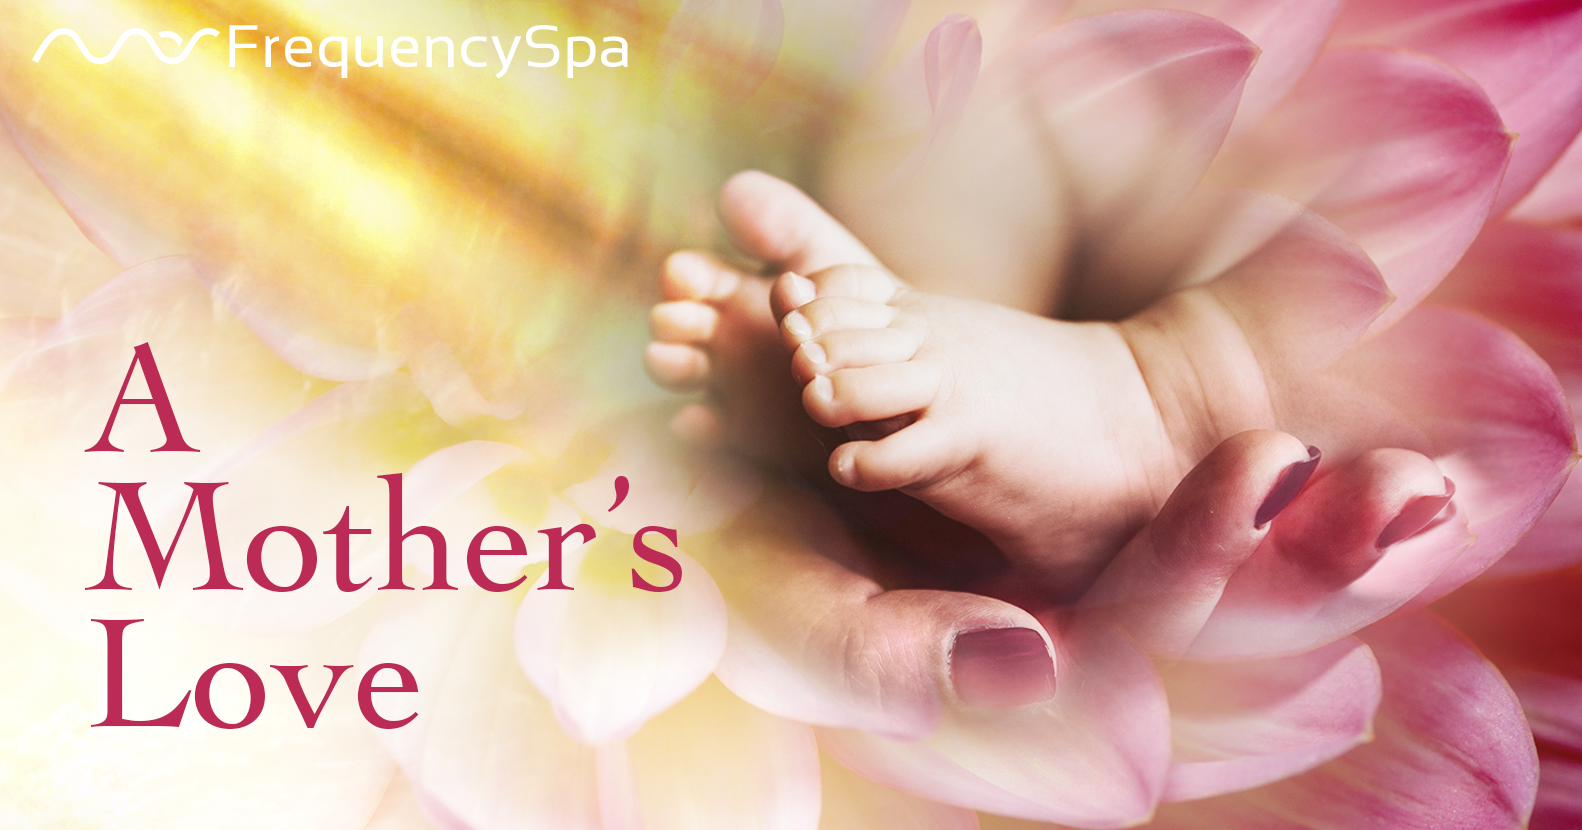 mothers-love-mas-sajady-live-frequency-spa-2.png